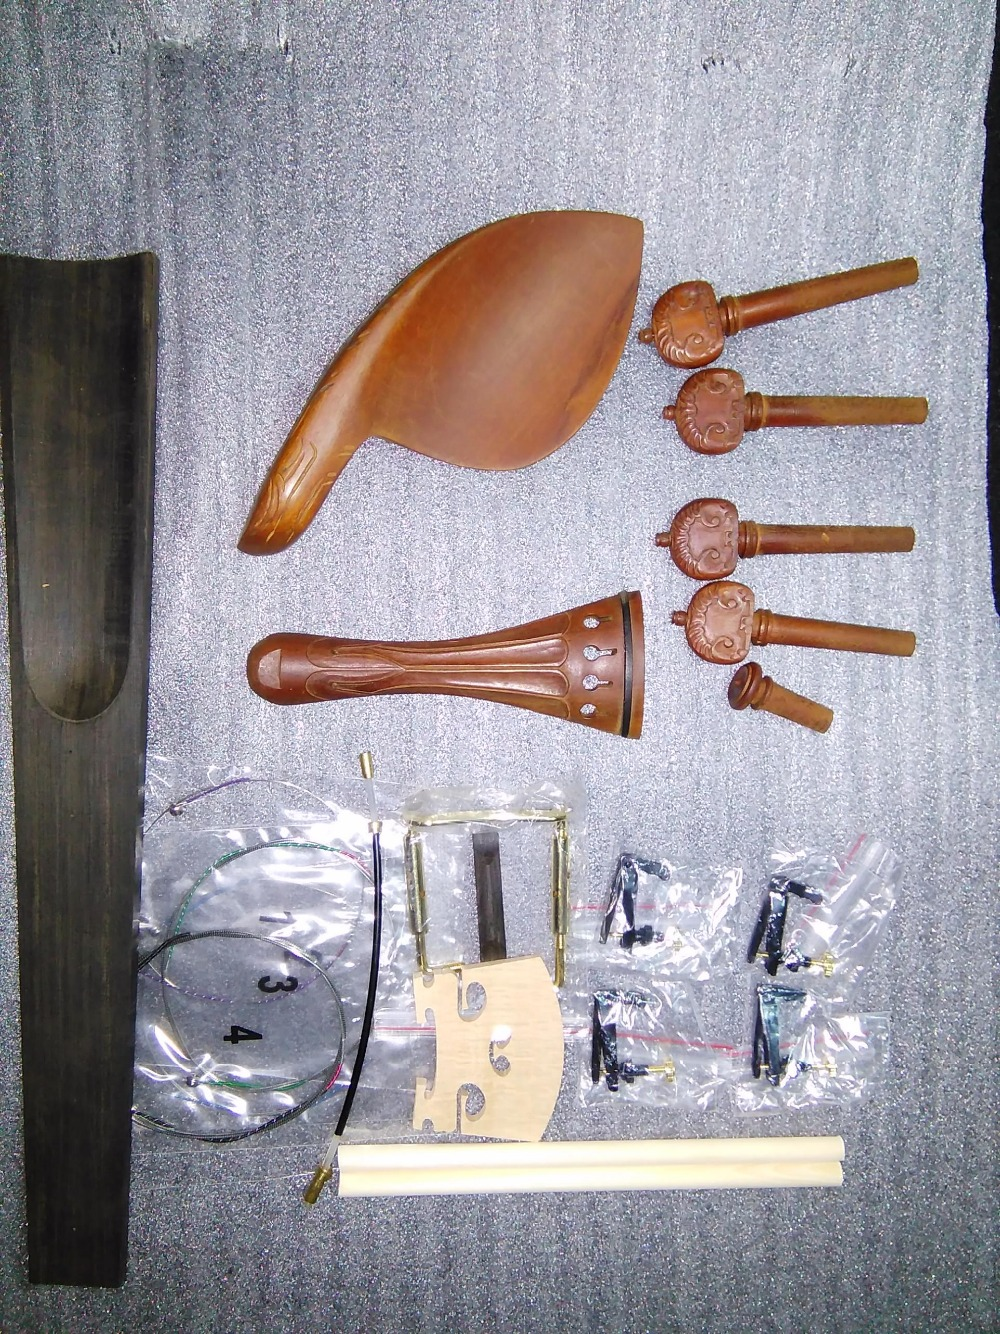 Humorous Quality Carved Jujube Violin Fitting 4/4 With String And Fingerboard Tuner Post Saddle Etc In 4/4 Relieving Heat And Thirst. Stringed Instruments